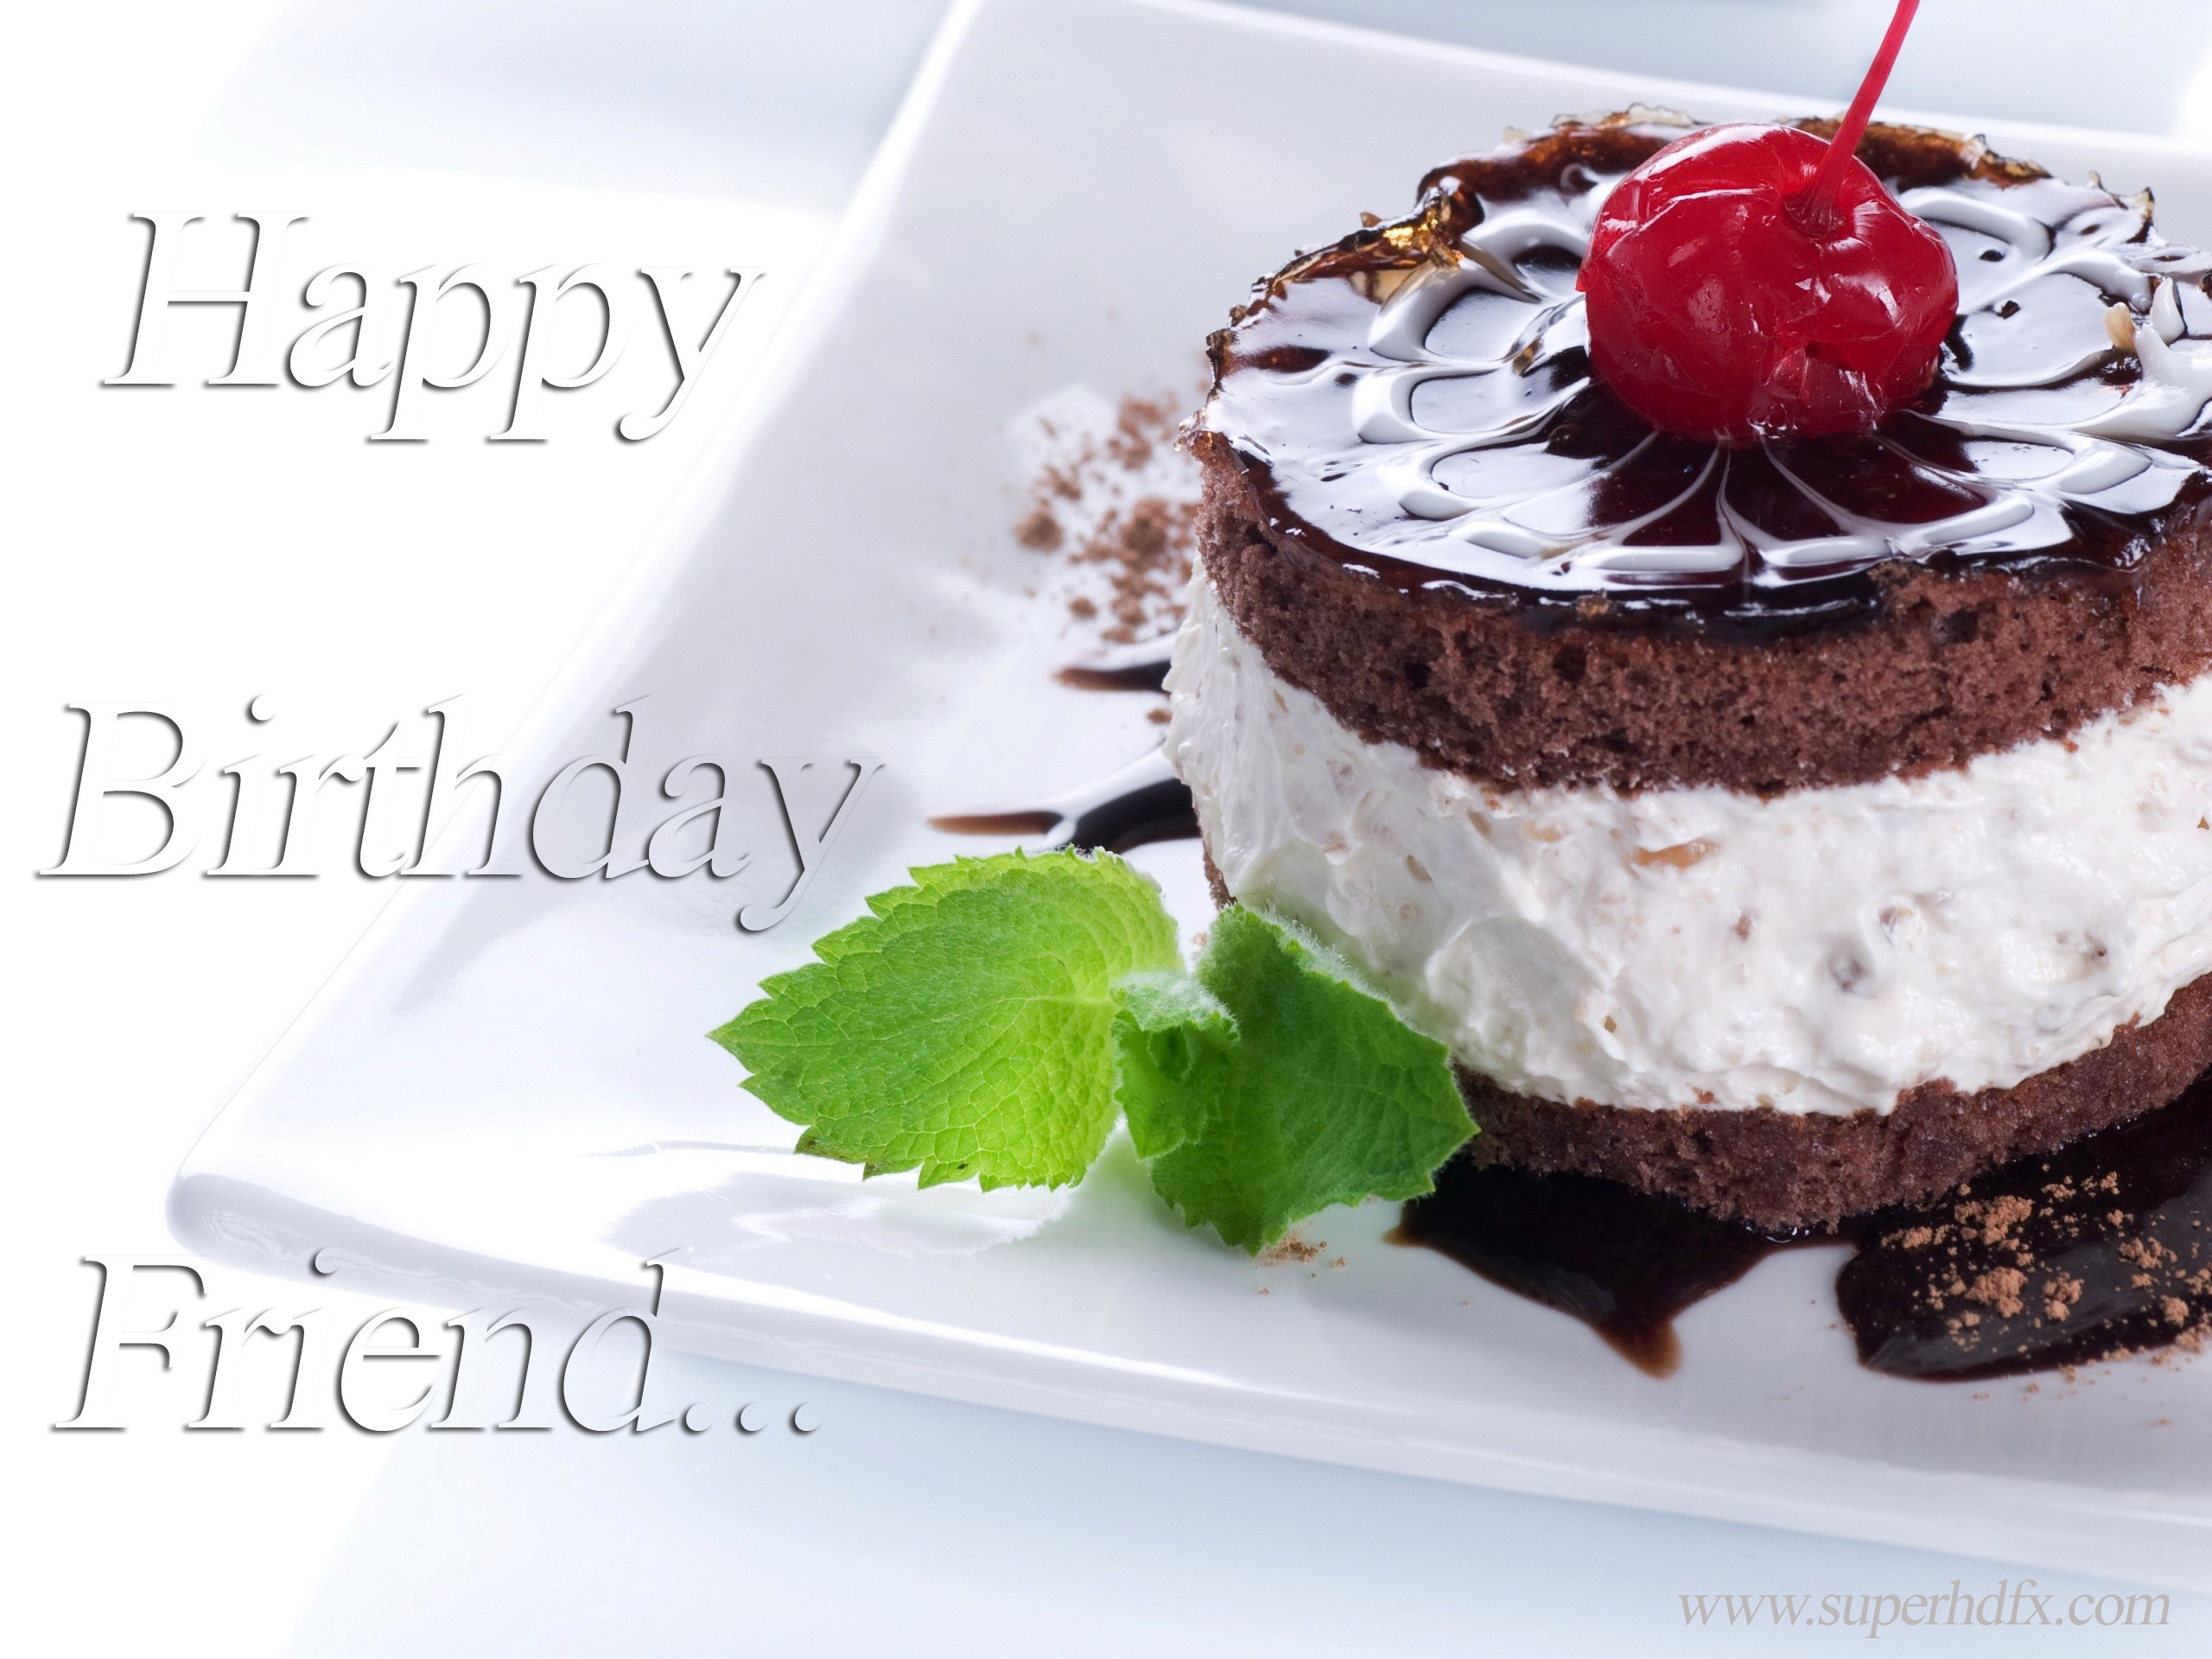 happy birthday images hd for friend ; Happy-Birth-Day-Friend-HD-Photo